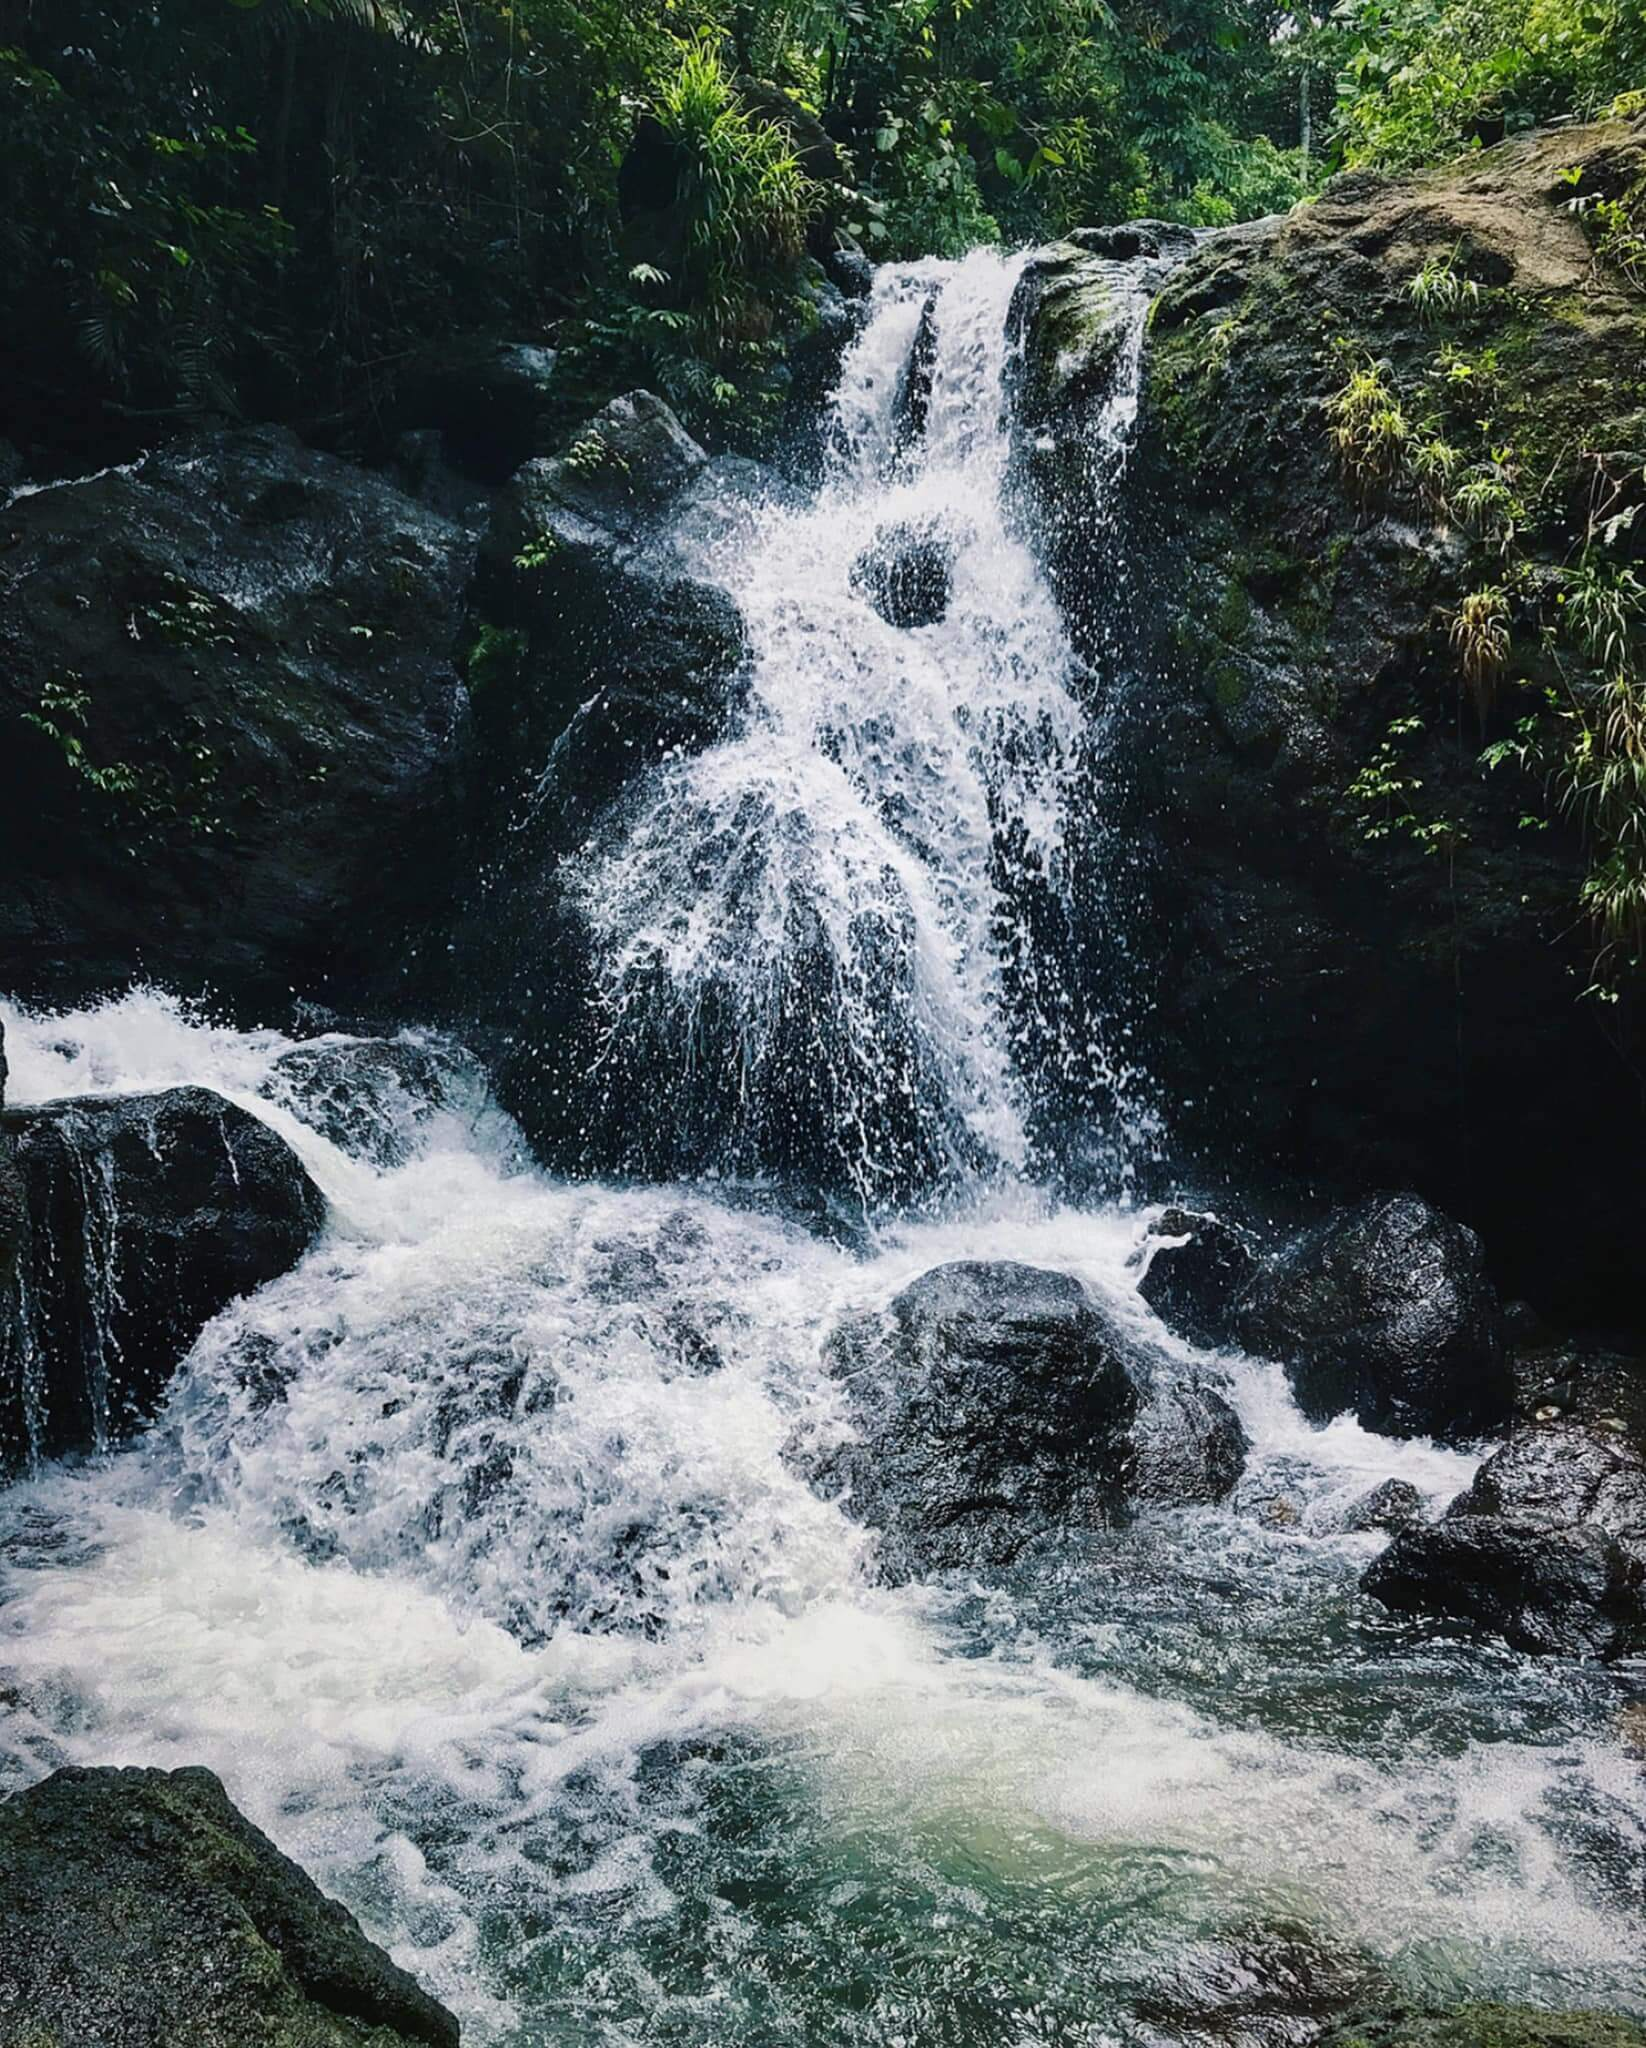 Siok Falls at Brgy. Mabini